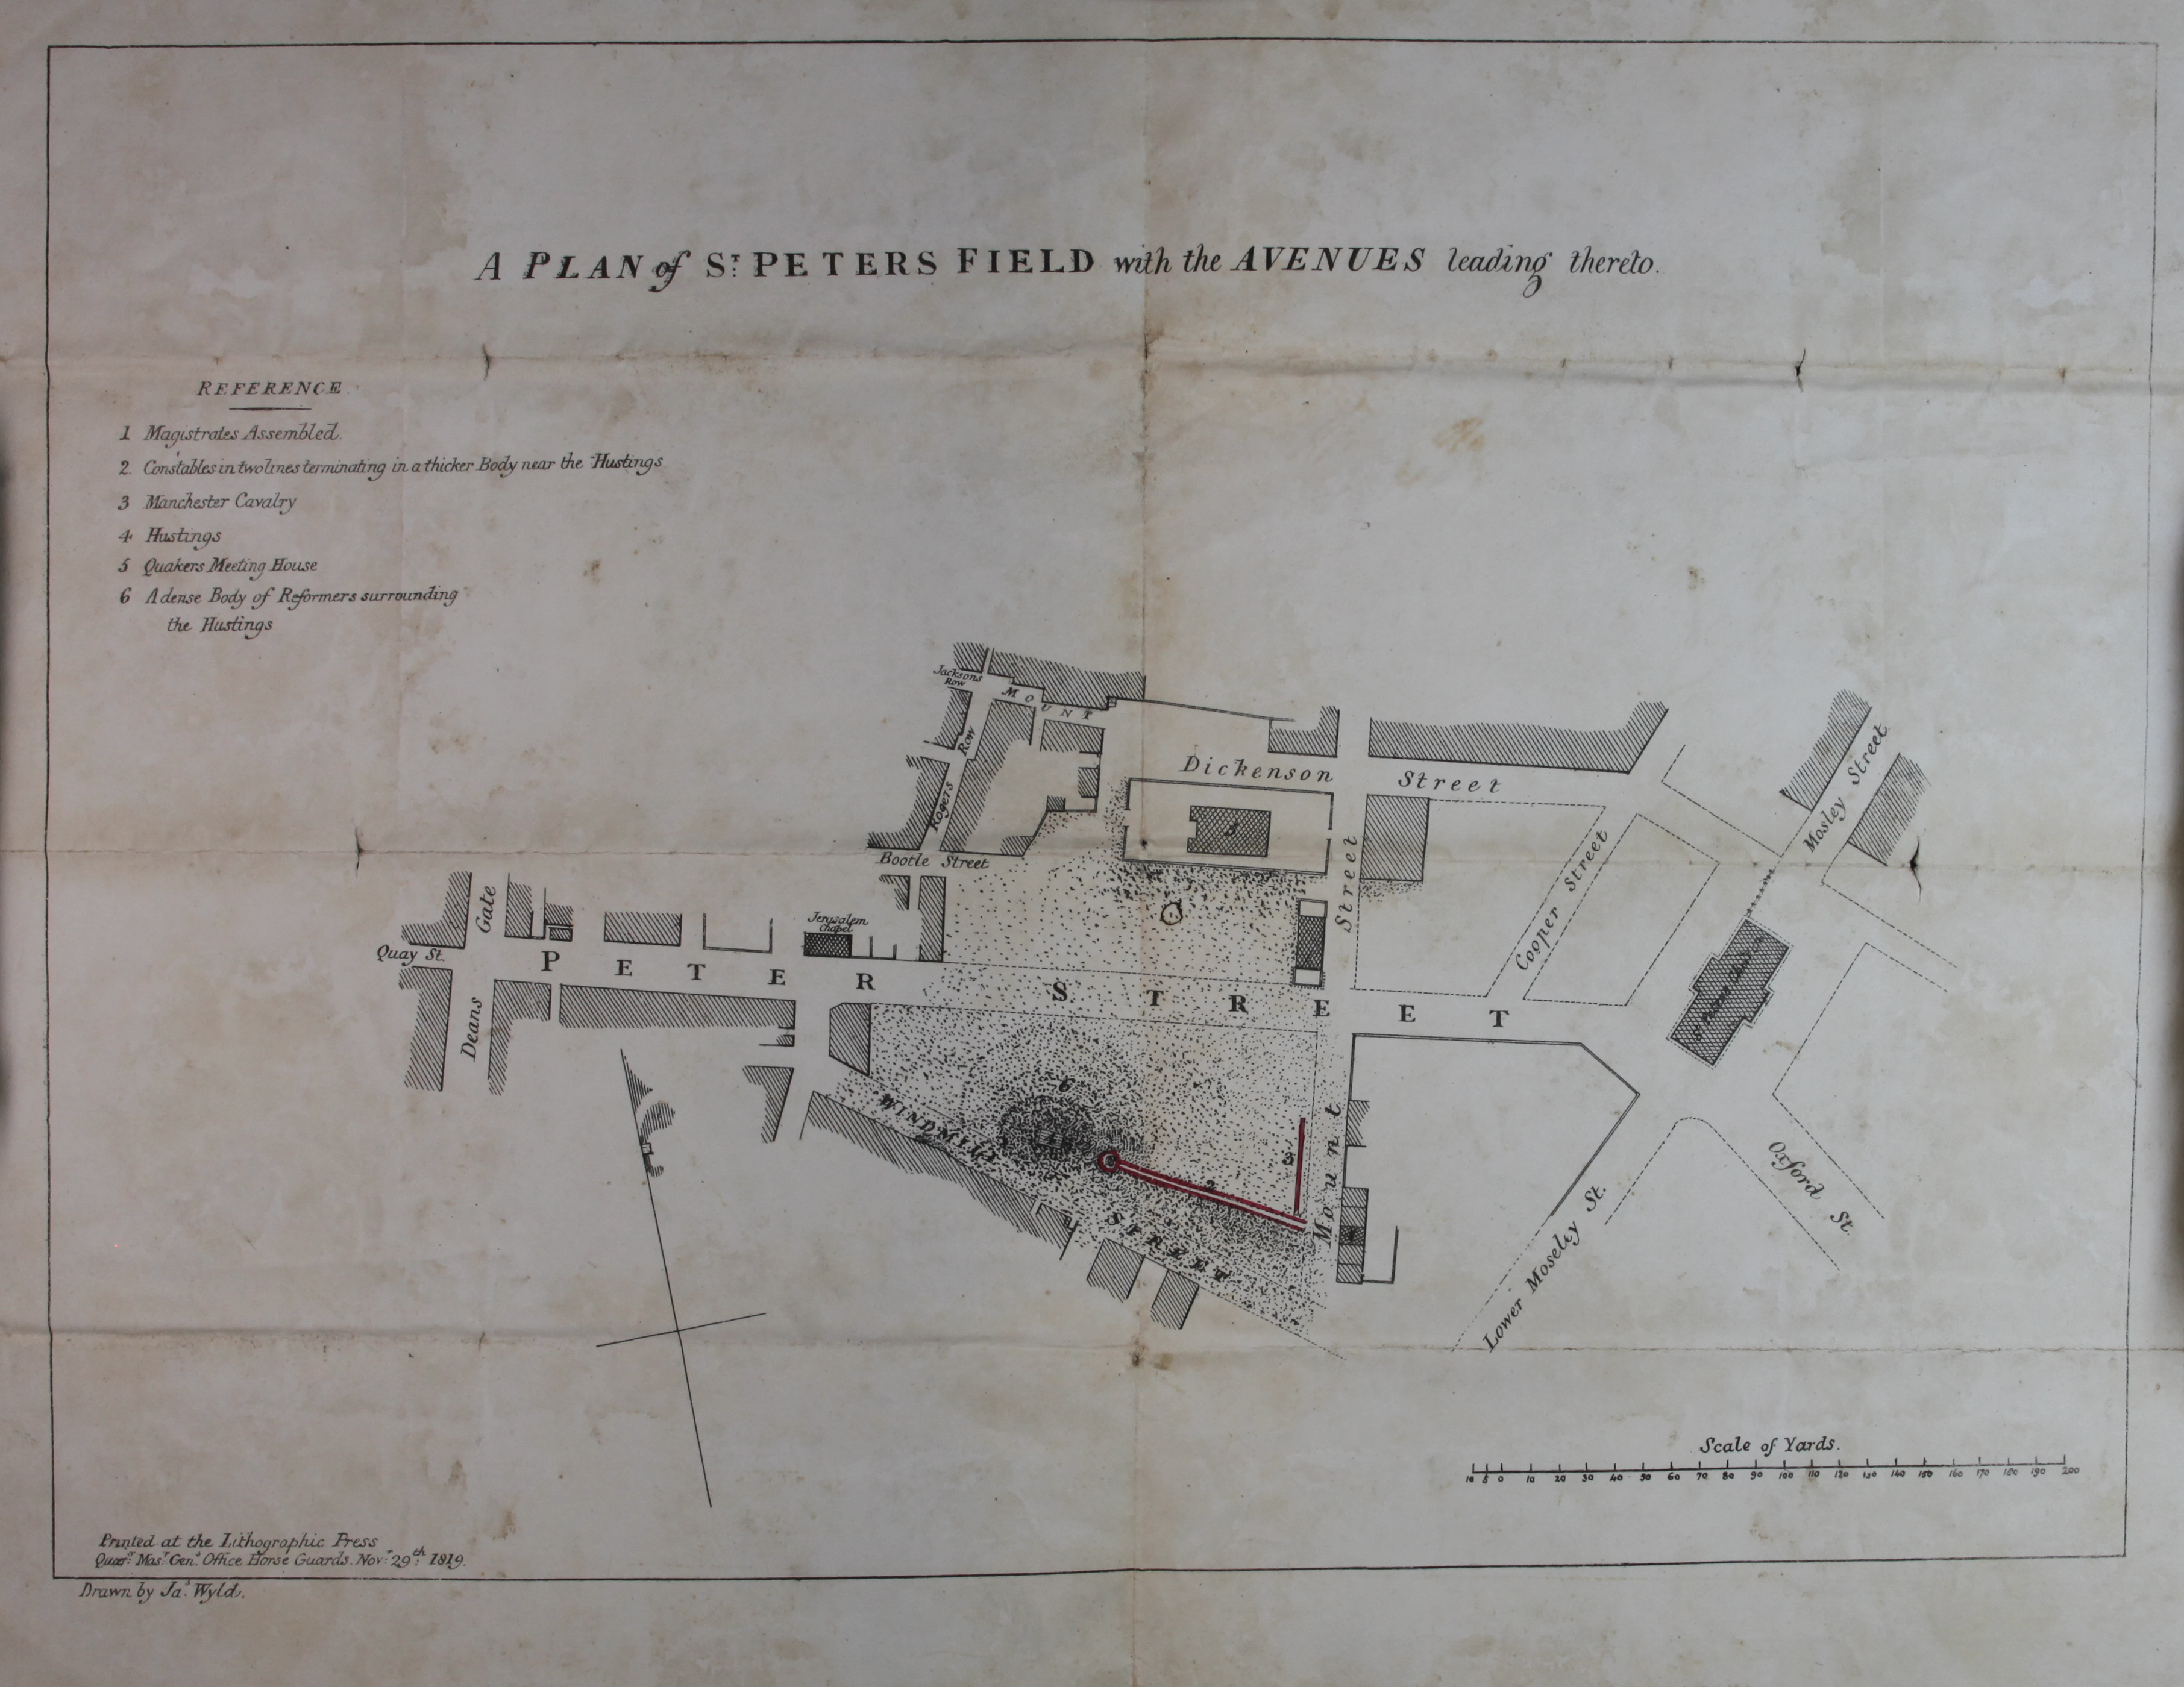 St Peters Field Map (ts-11-1056)